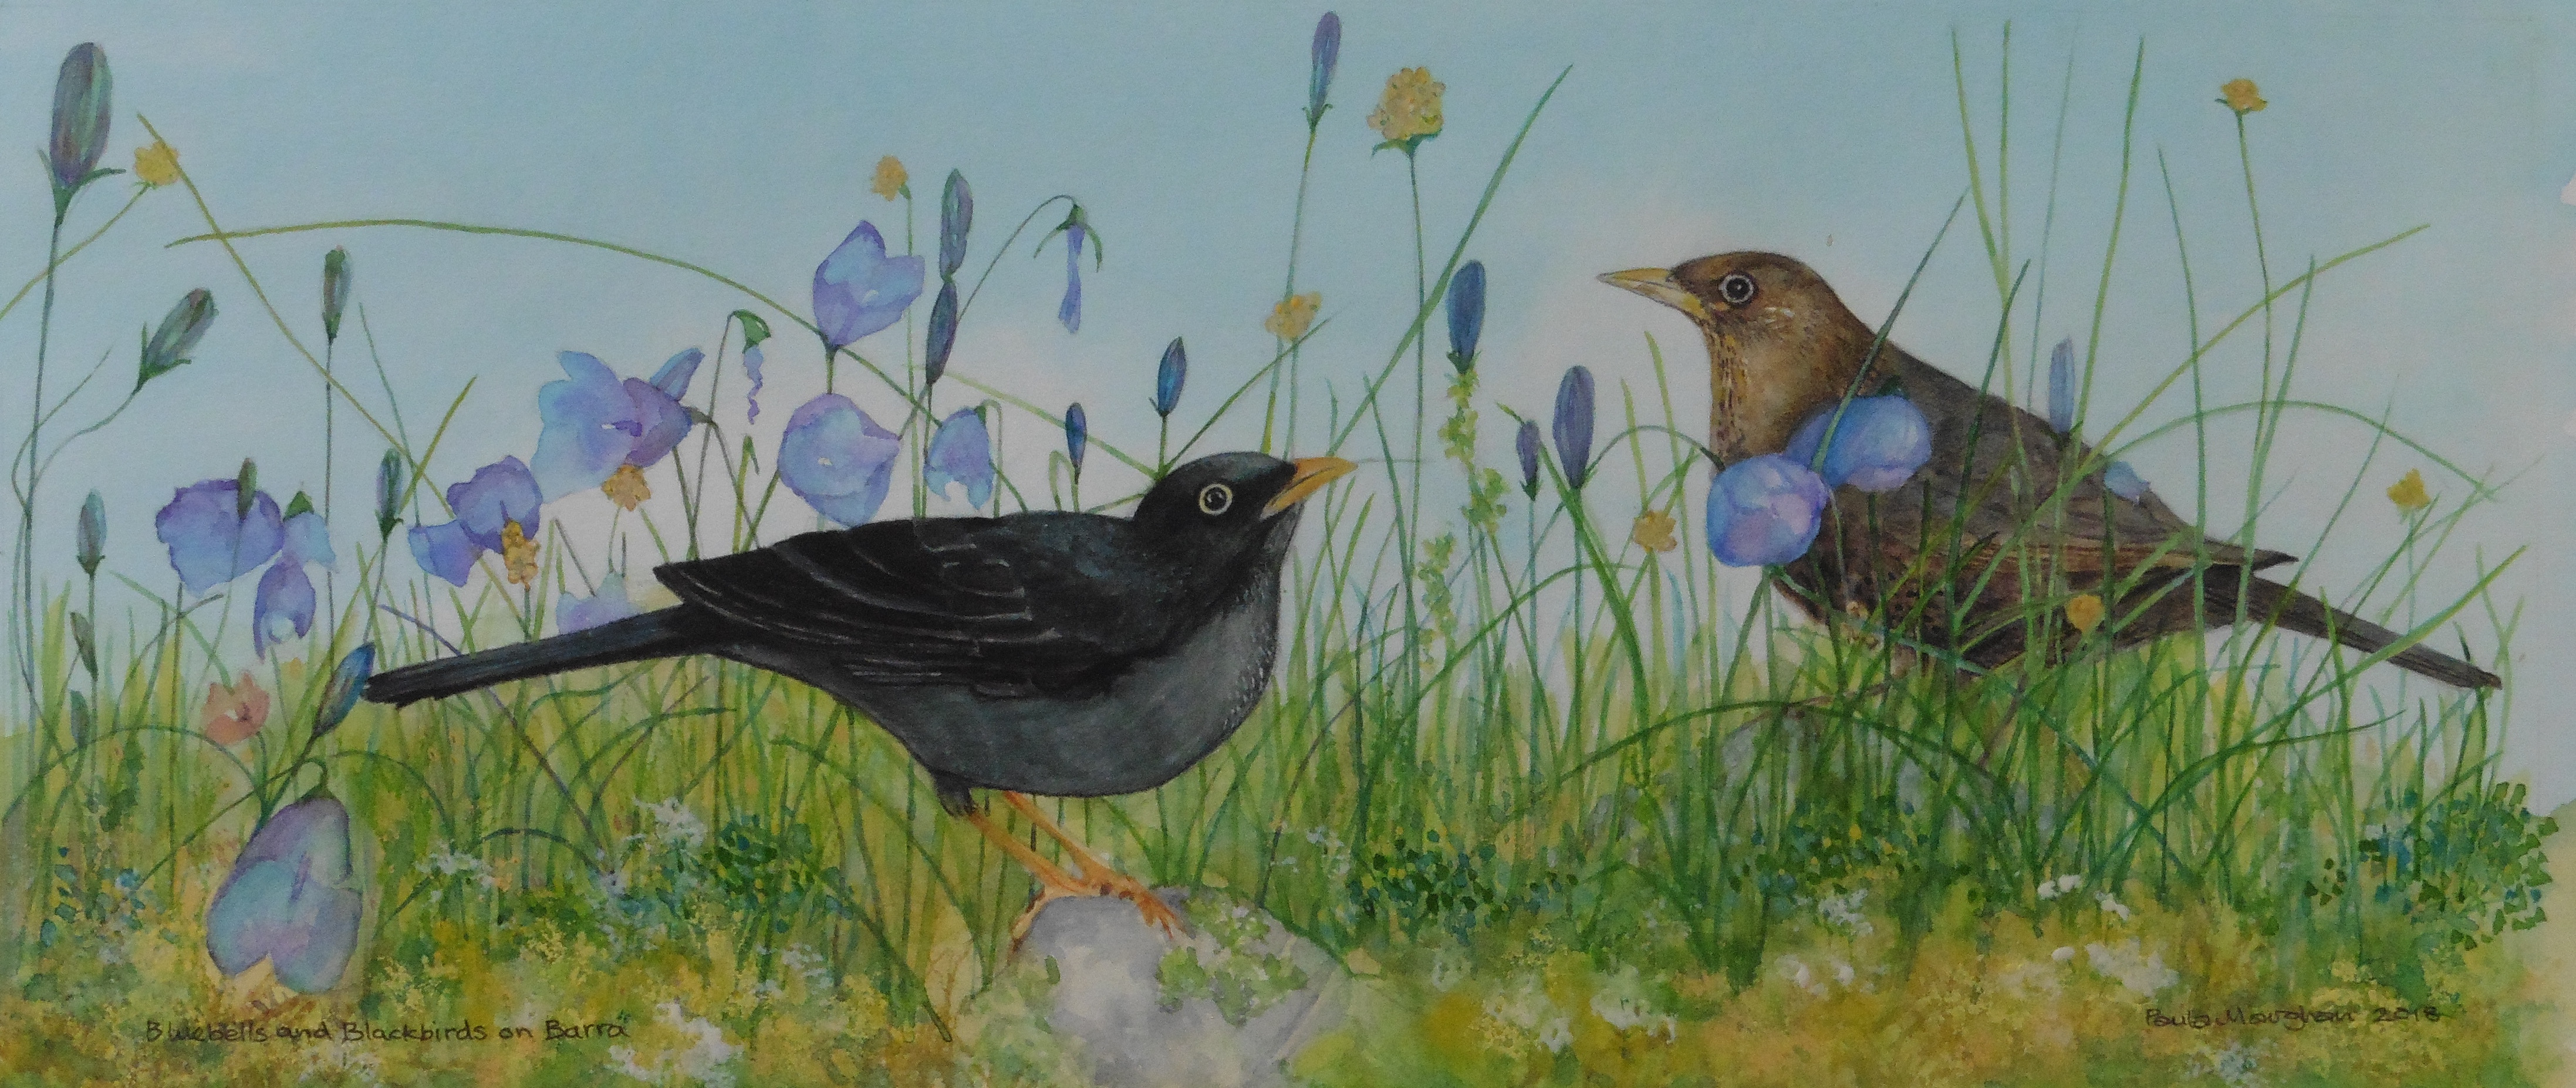 Bluebells and Blackbirds on Barra